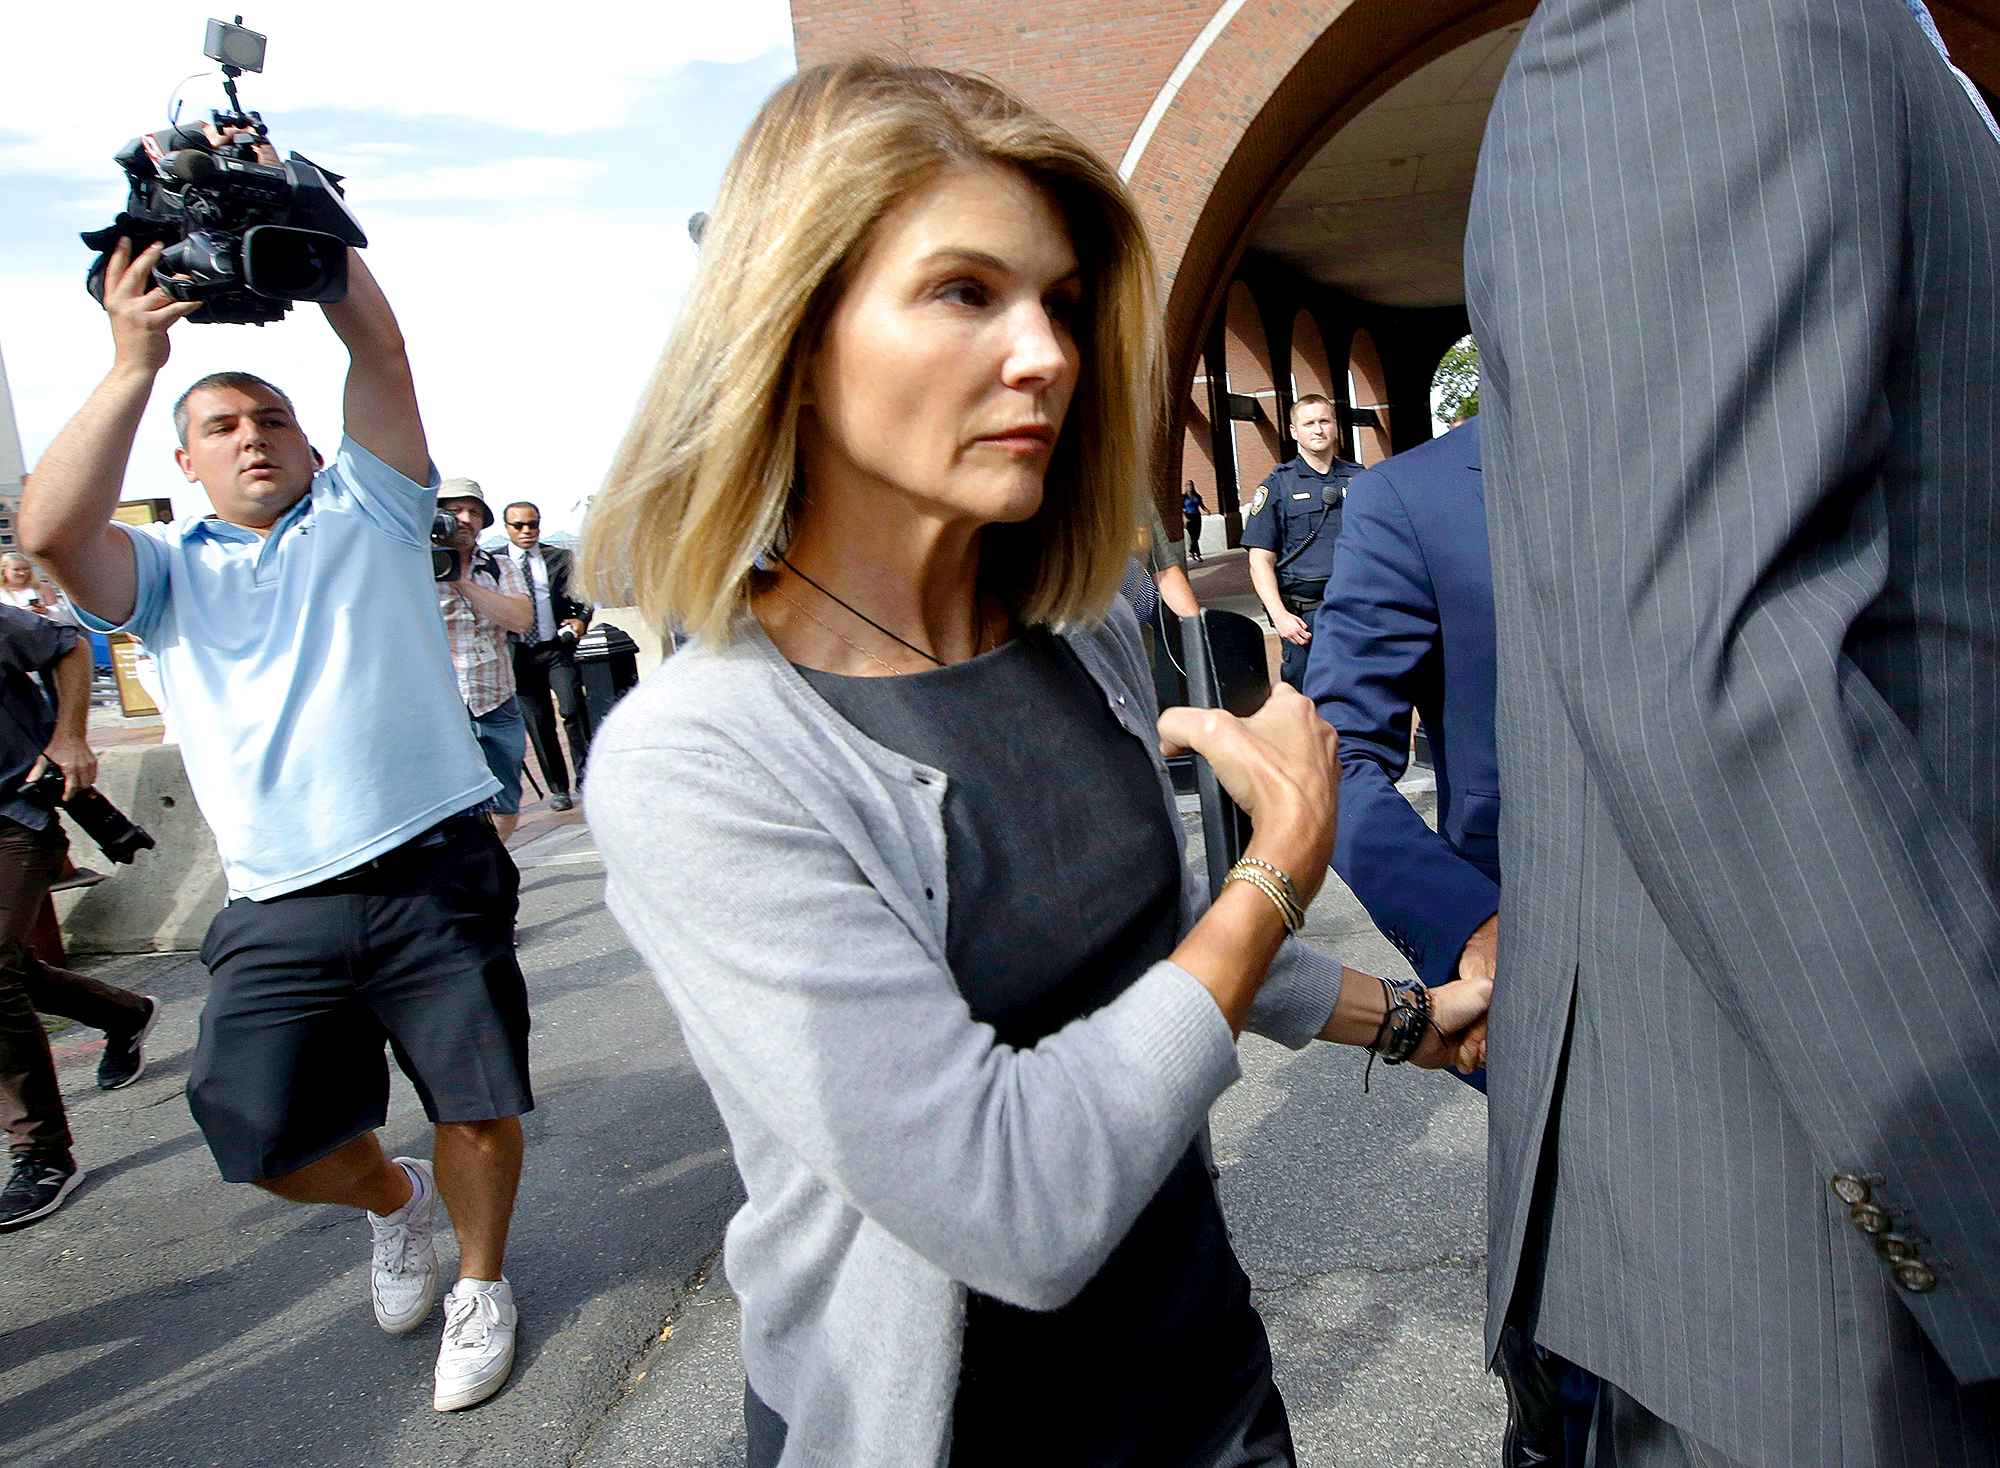 Lori-Loughlin-Worked-With-Image-Consultant-Before-Court-Appearance